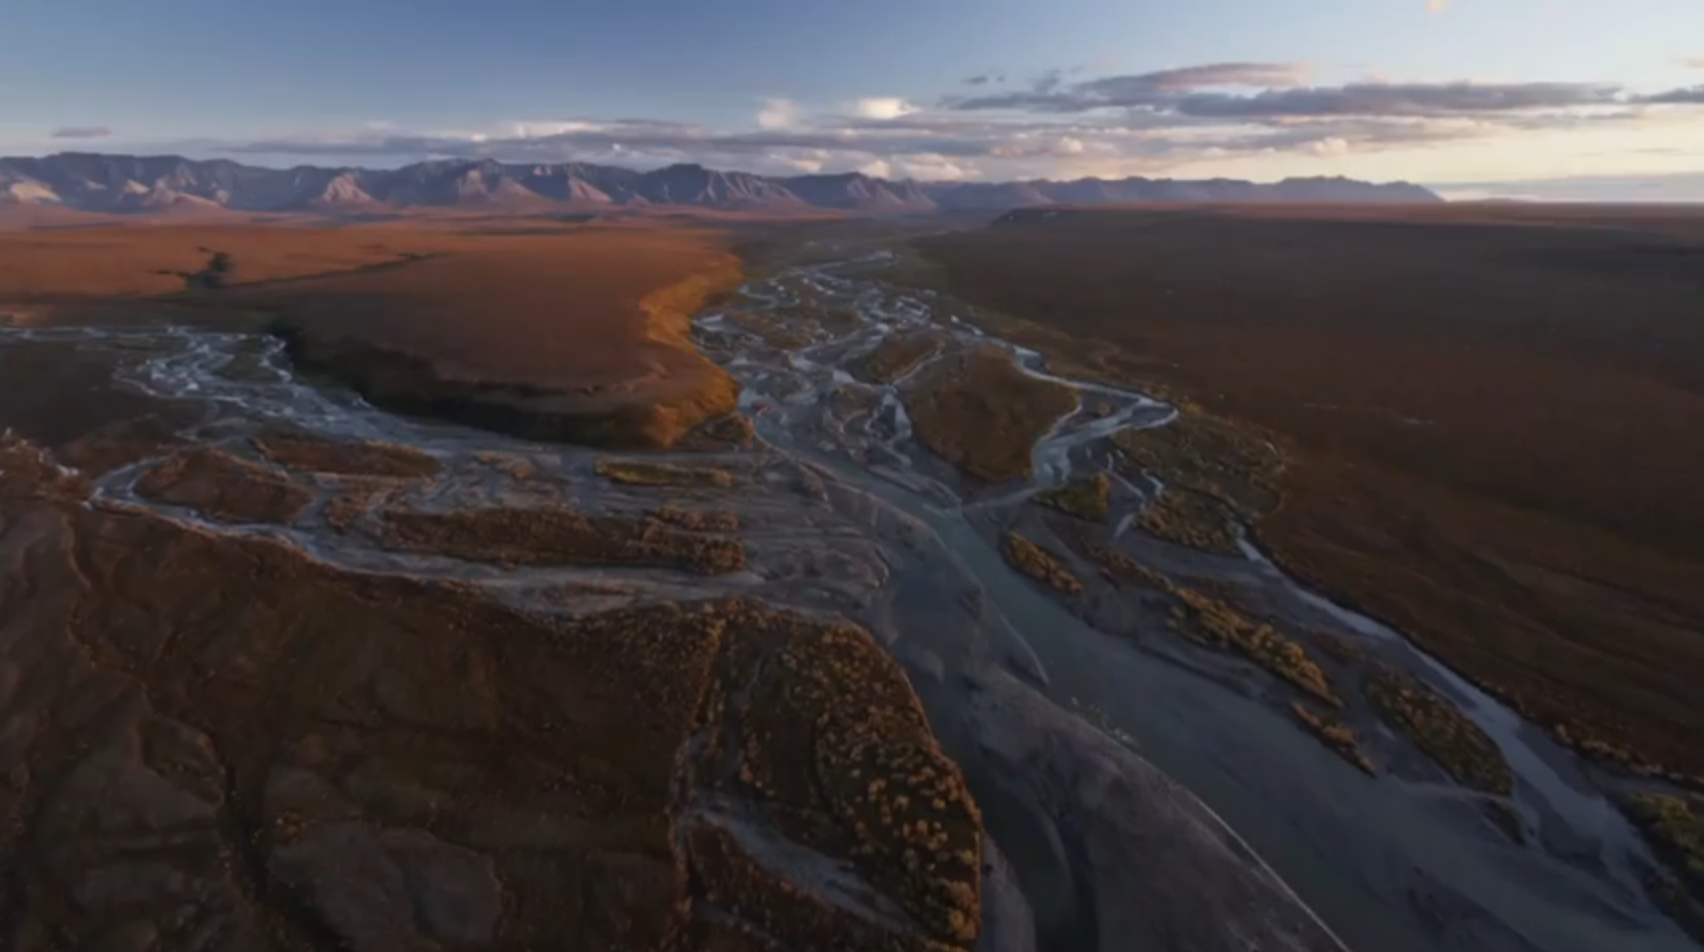 A still from the ANWR video released by the White House (Image courtesy YouTube)